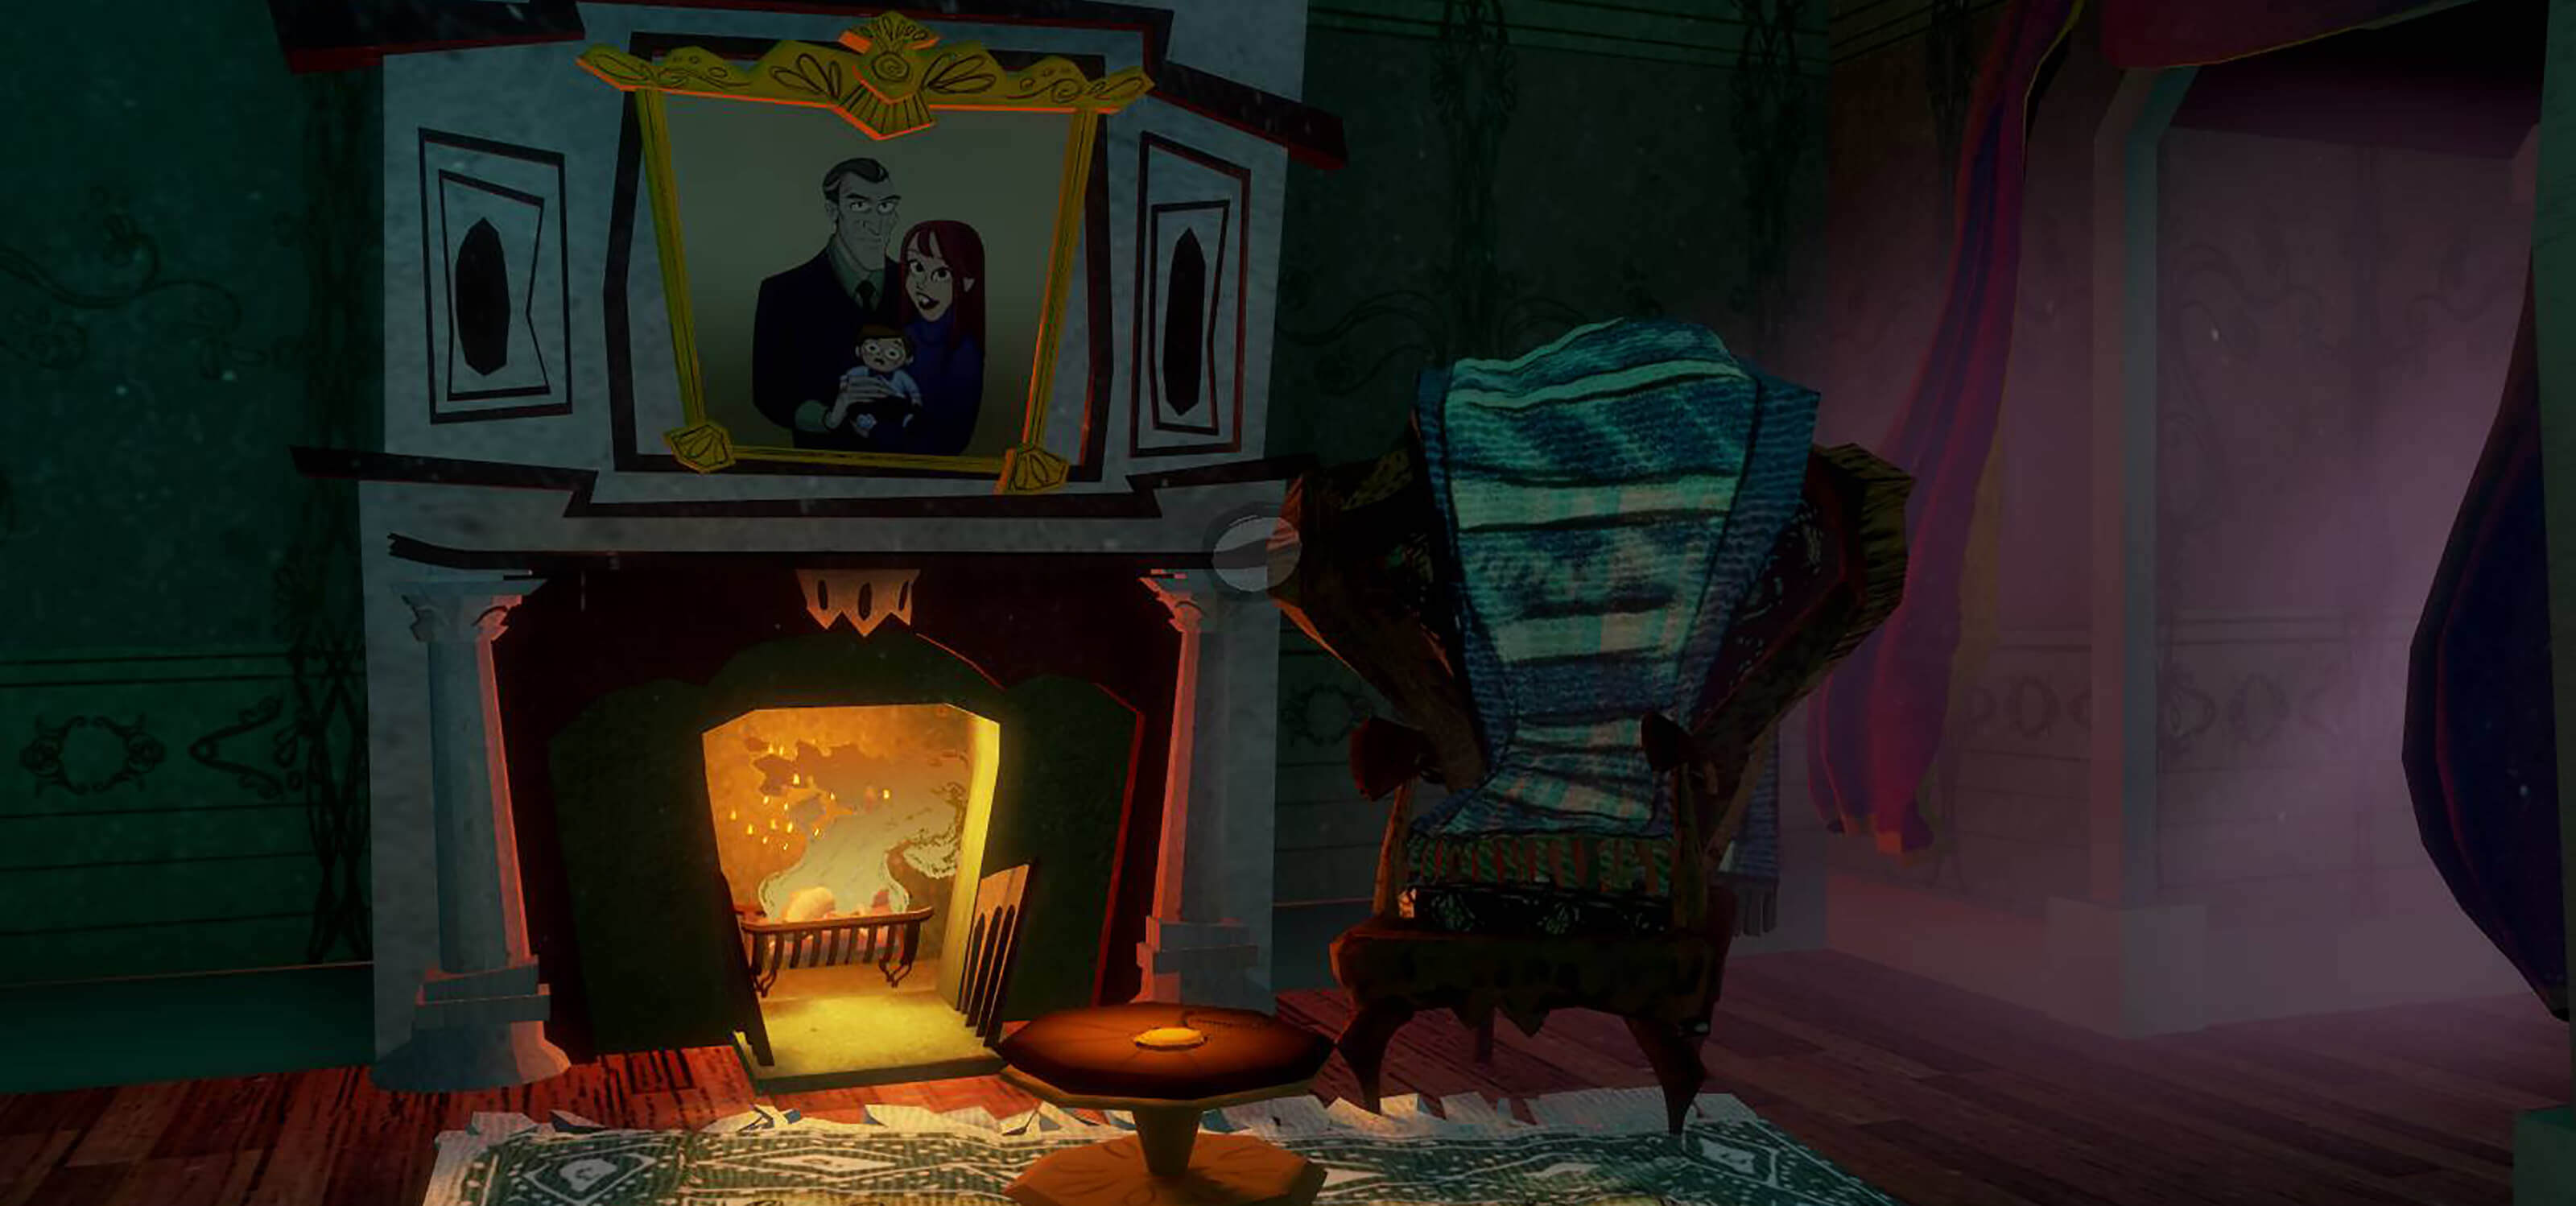 Screenshot from Penny Blue Finds a Clue featuring a darkened room with a family portrait above a fireplace and a wing chair beside it